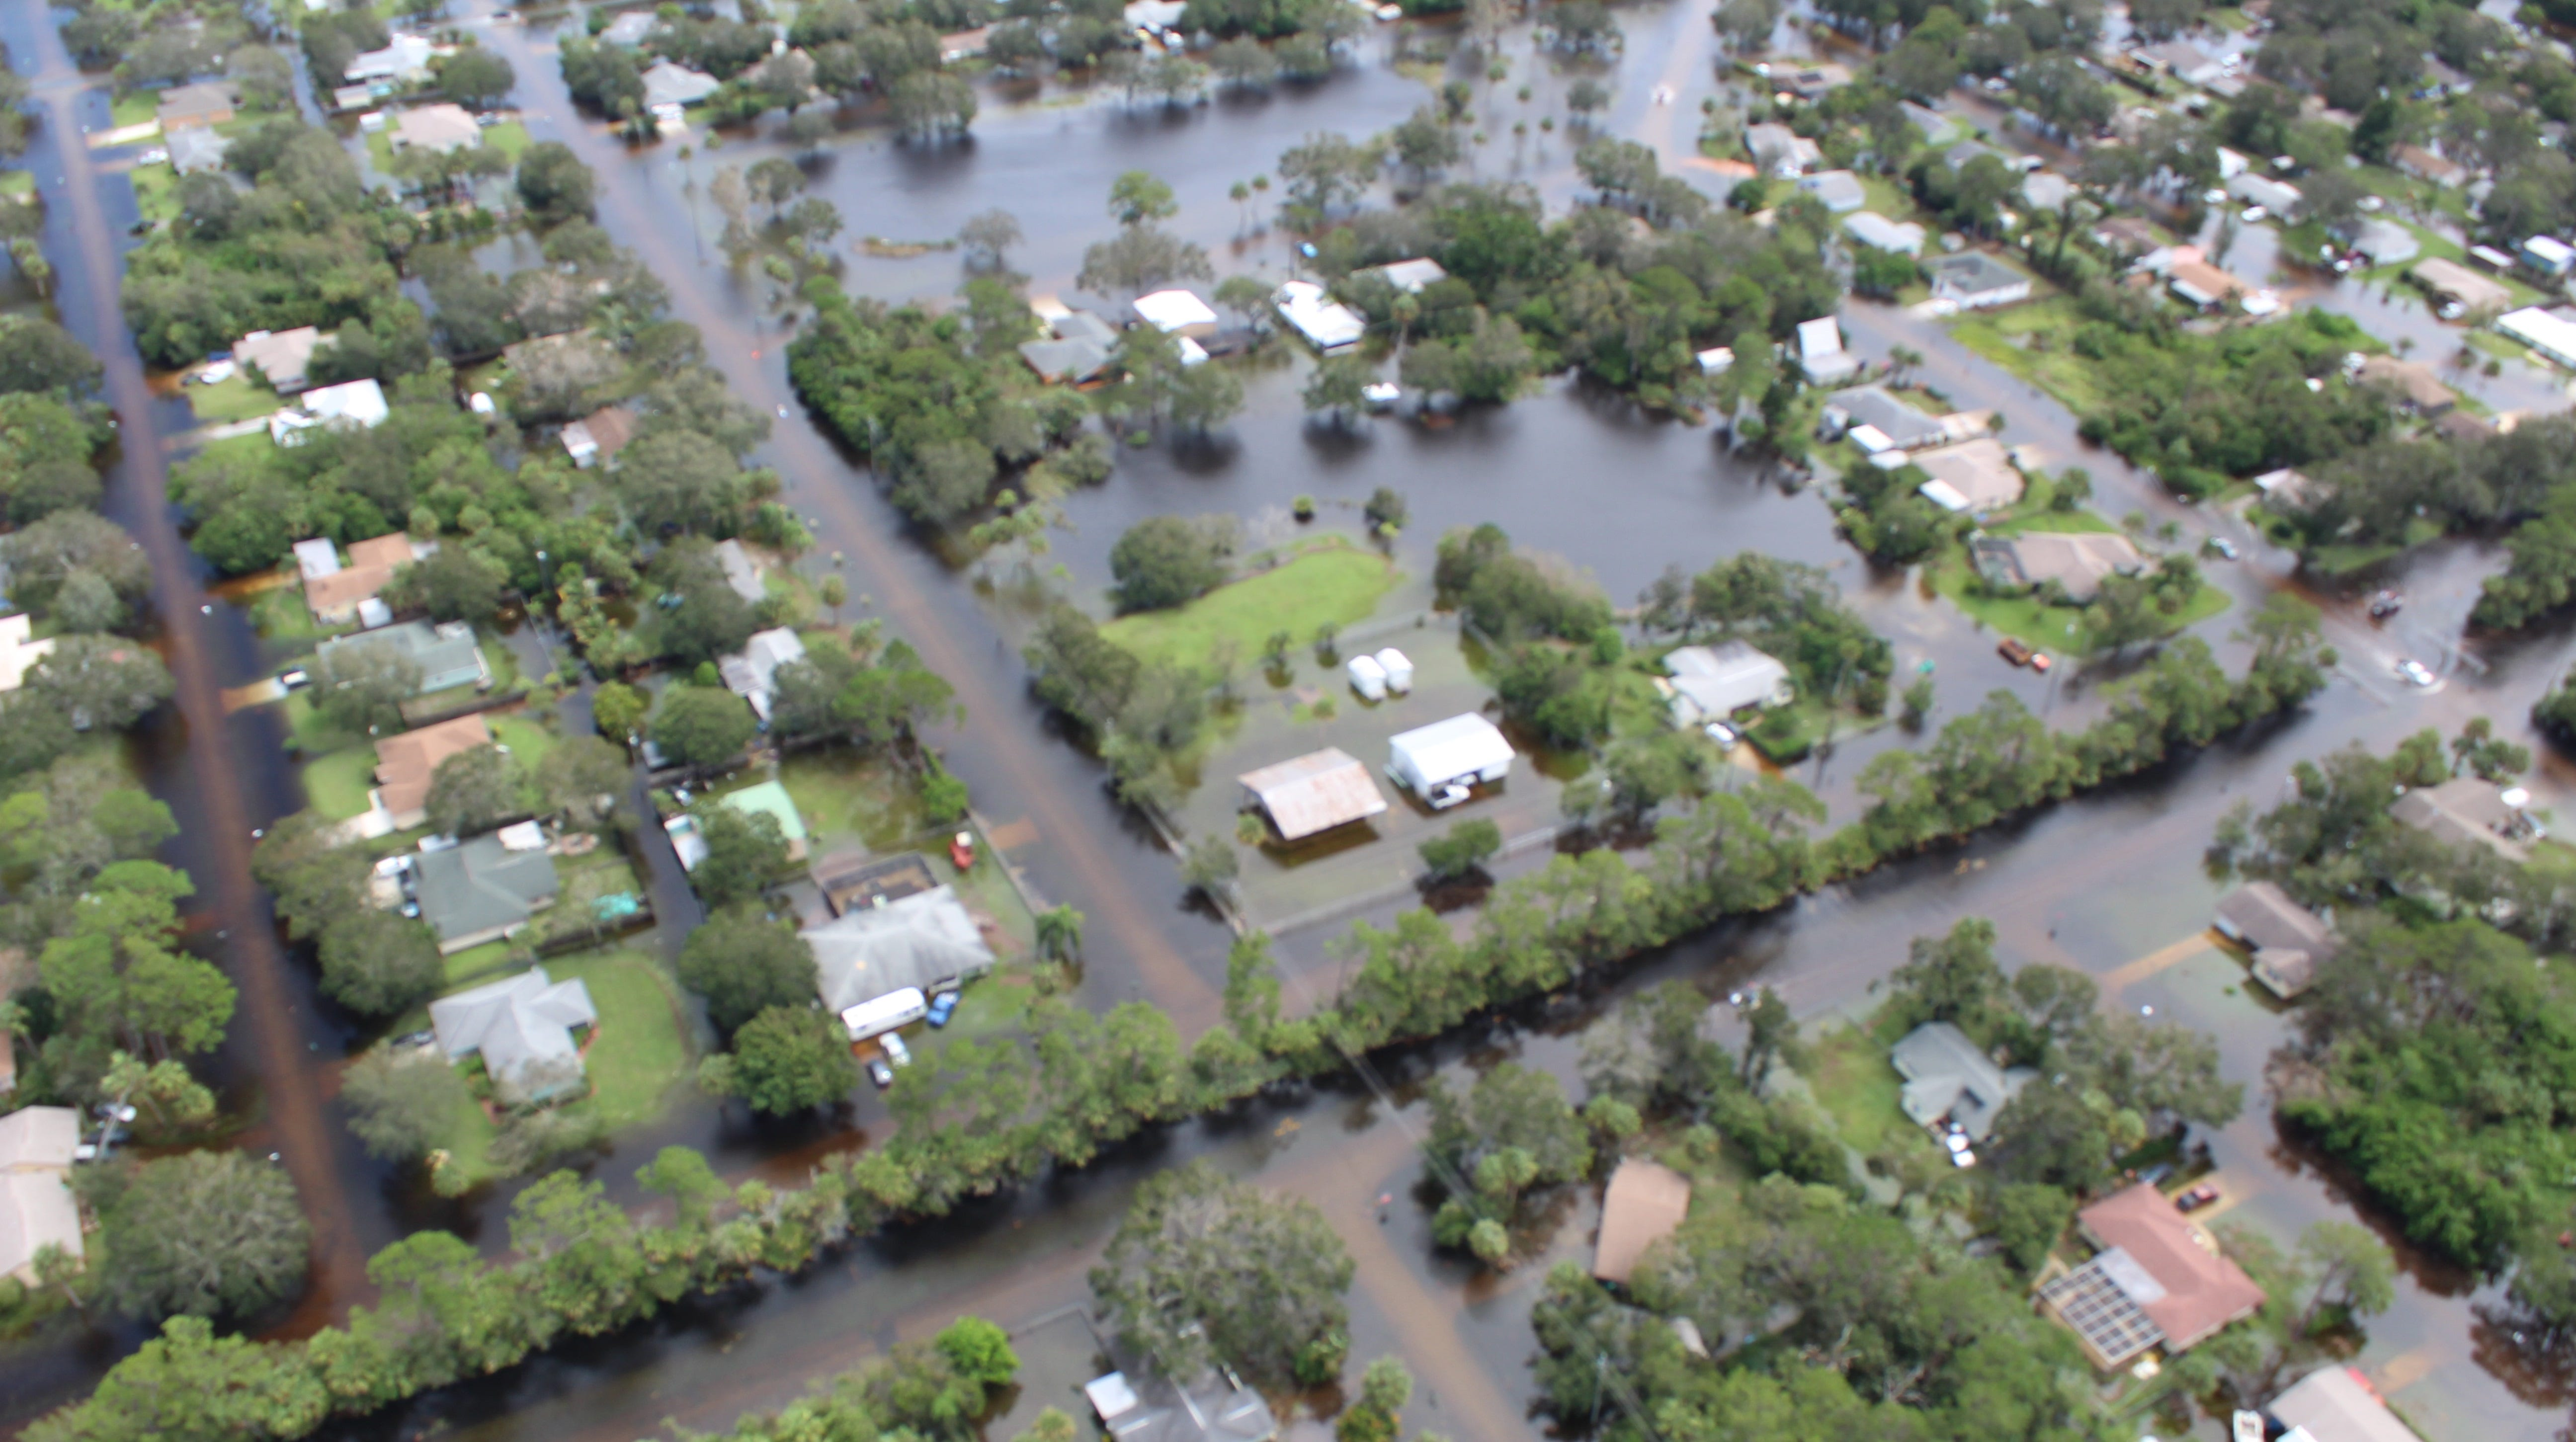 The state of Florida is committed to helping homeowners affected by the storm by rebuilding or replacing damaged homes.